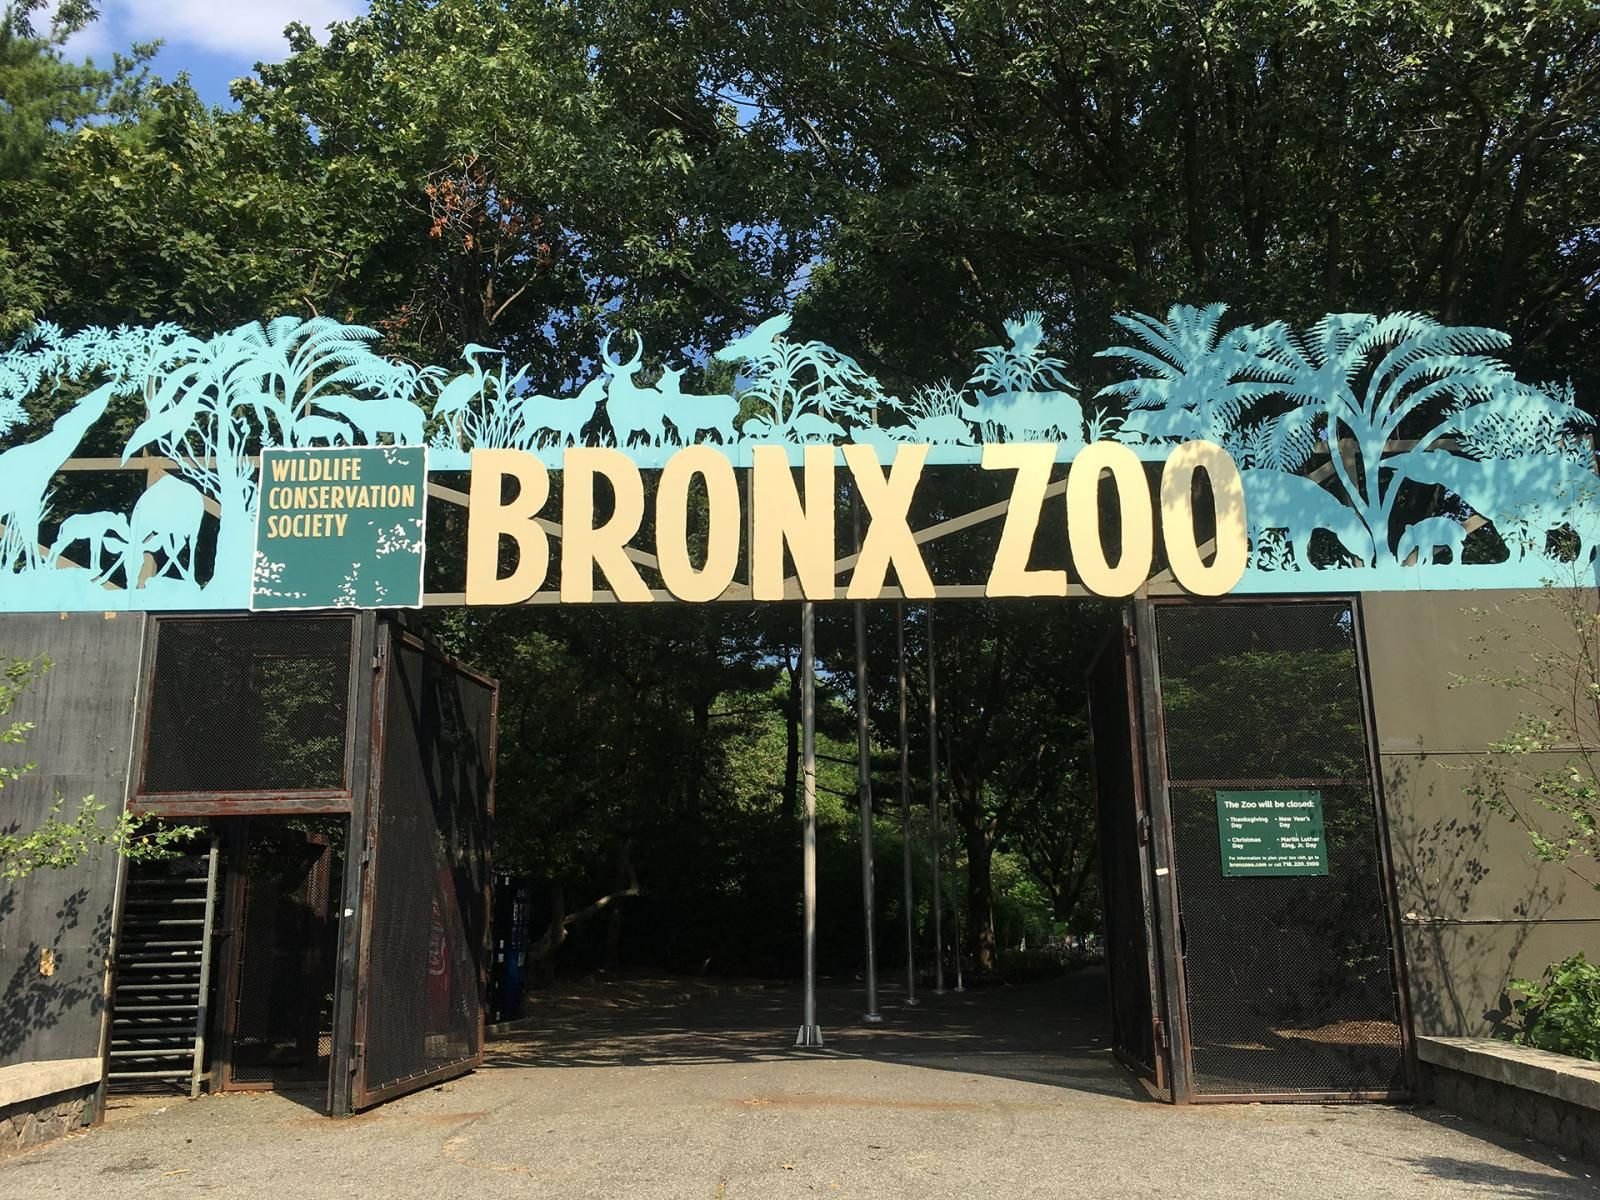 How Do You Get To The Bronx Zoo By Train